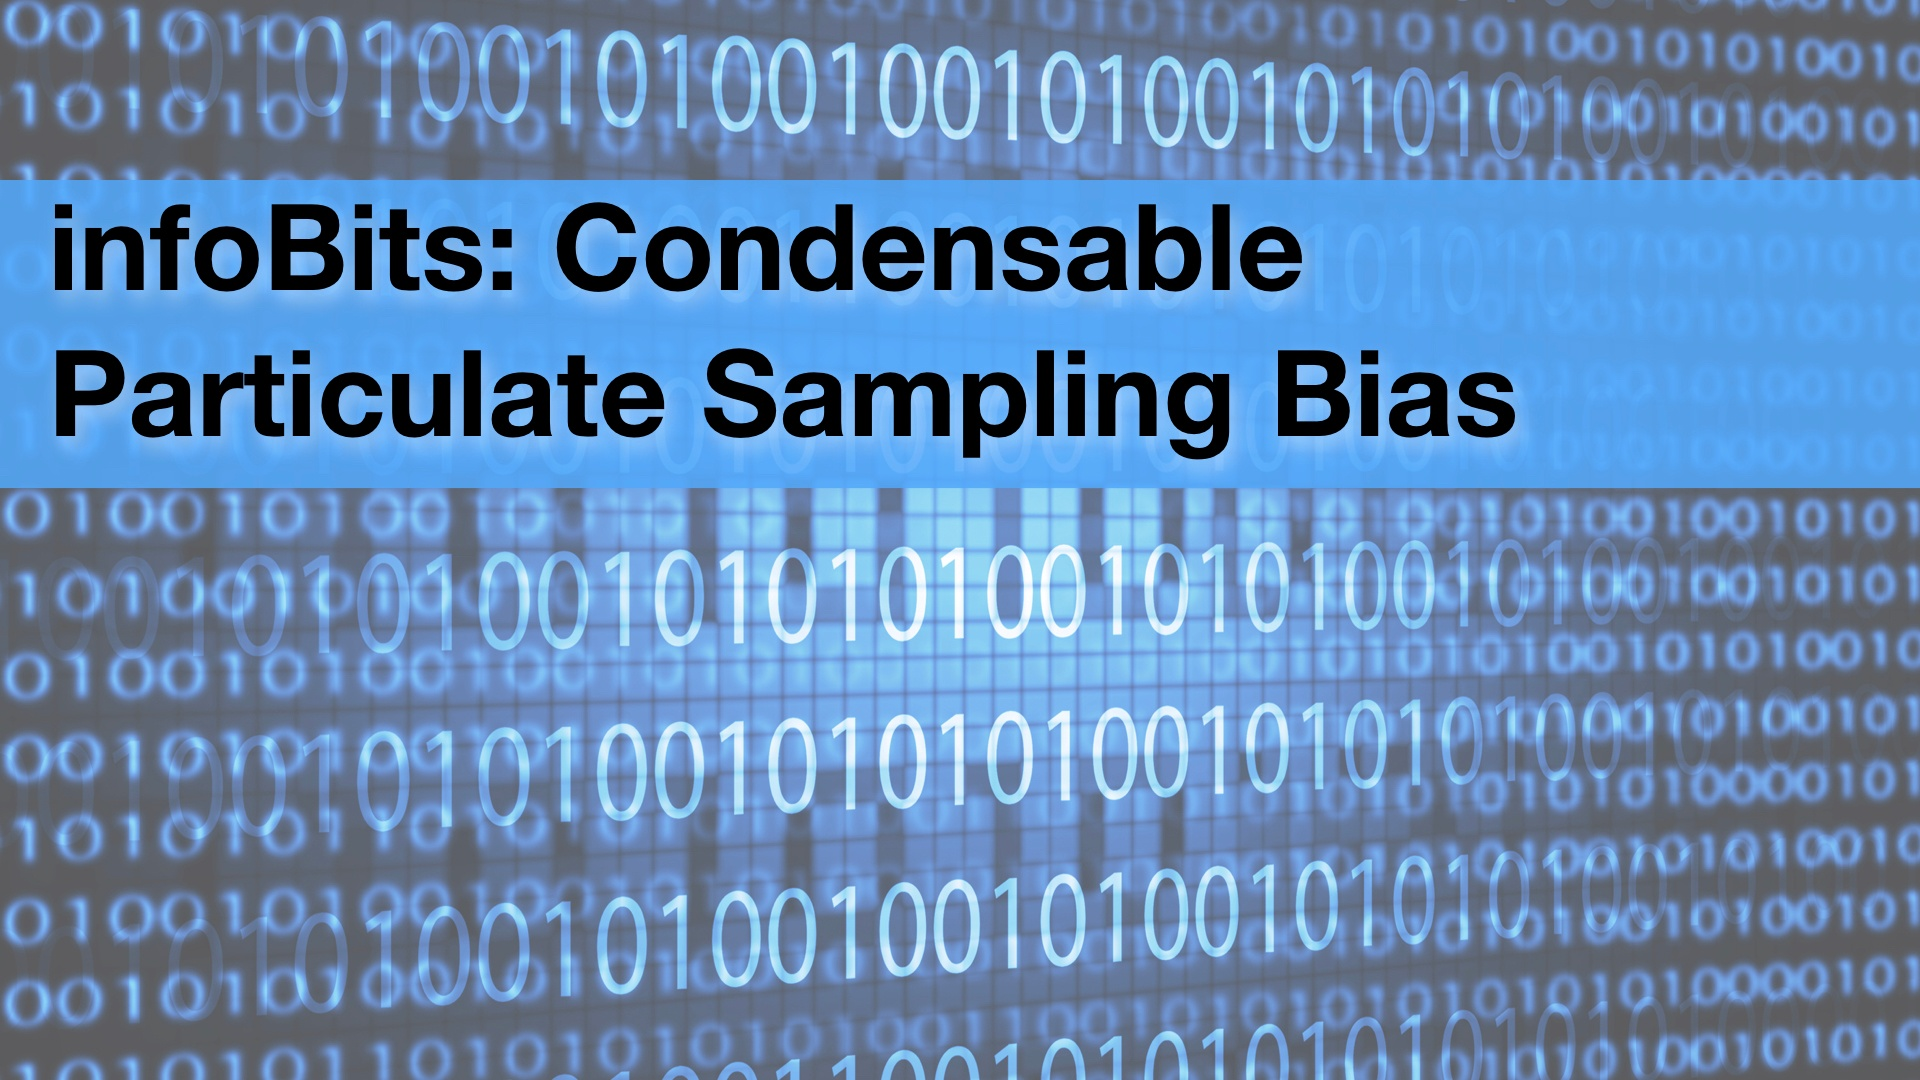 infoBits: Condensable Particulate Sampling Bias